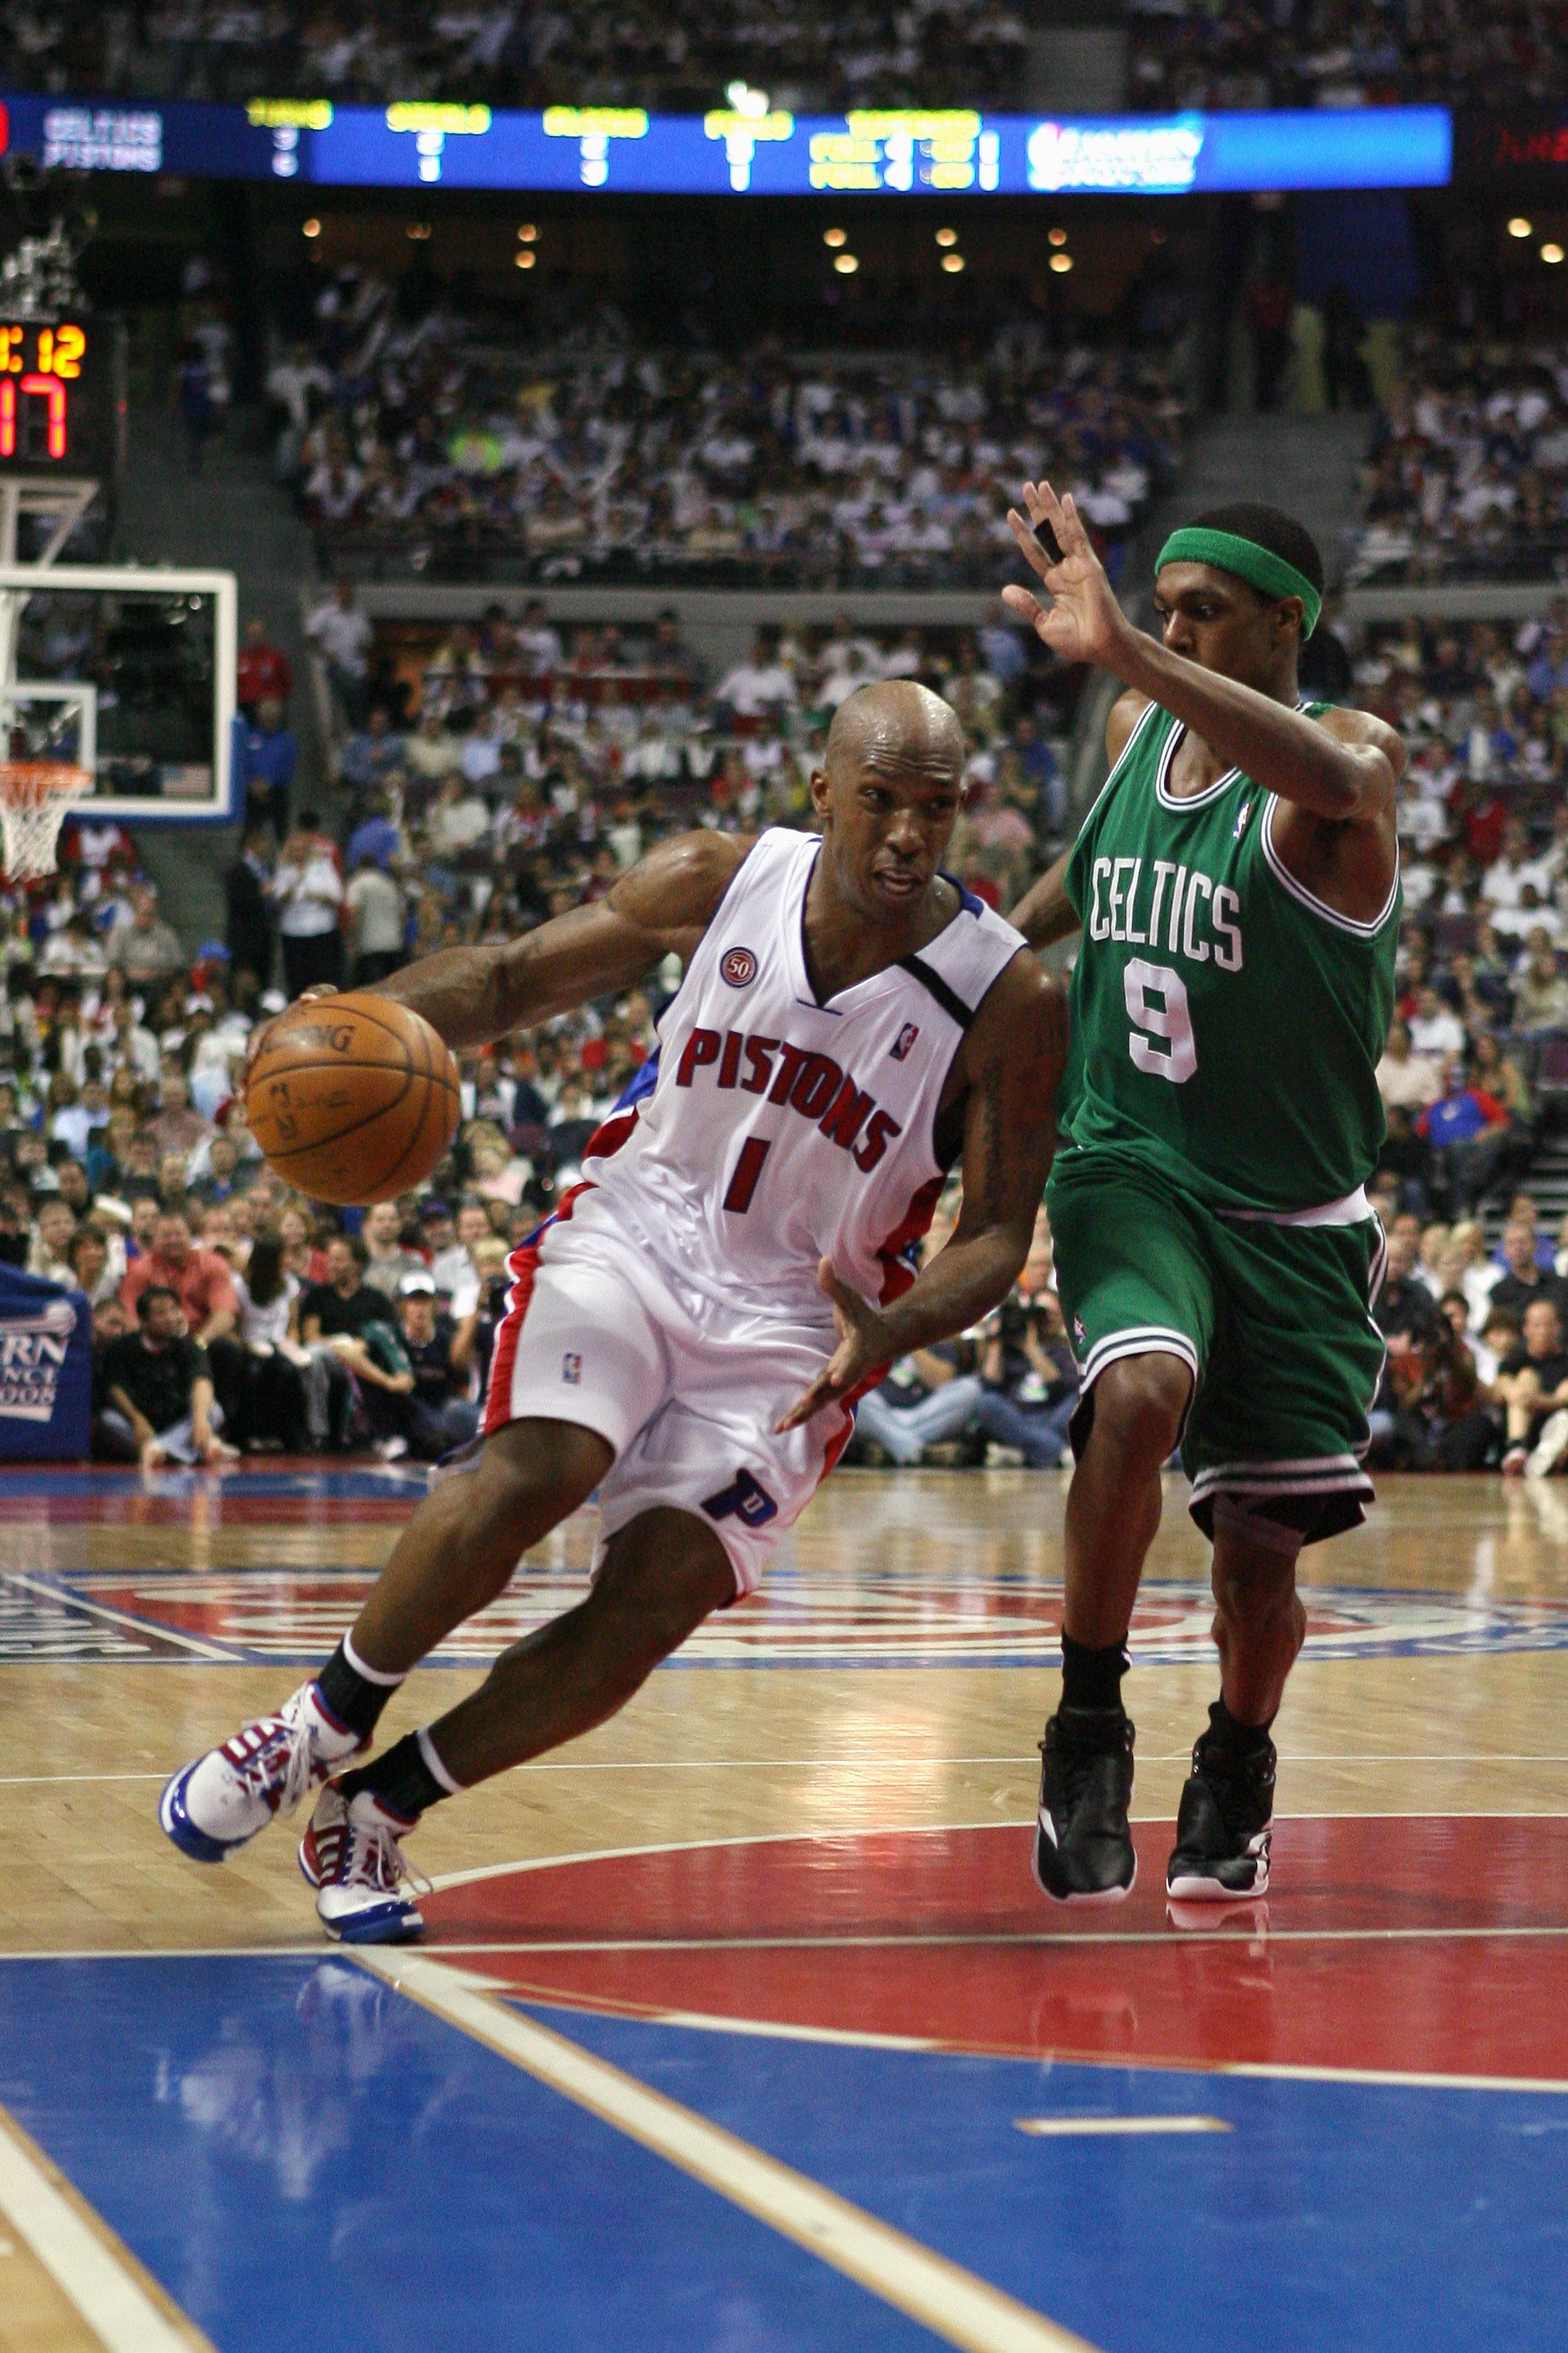 AUBURN HILLS, MI - MAY 30:  Chauncey Billups #1 of the Detroit Pistons drives to the basket against Rajon Rondo #1 of the Boston Celtics in Game Six of the Eastern Conference Finals during the 2008 NBA Playoffs at the Palace of Auburn Hills on May 30, 200